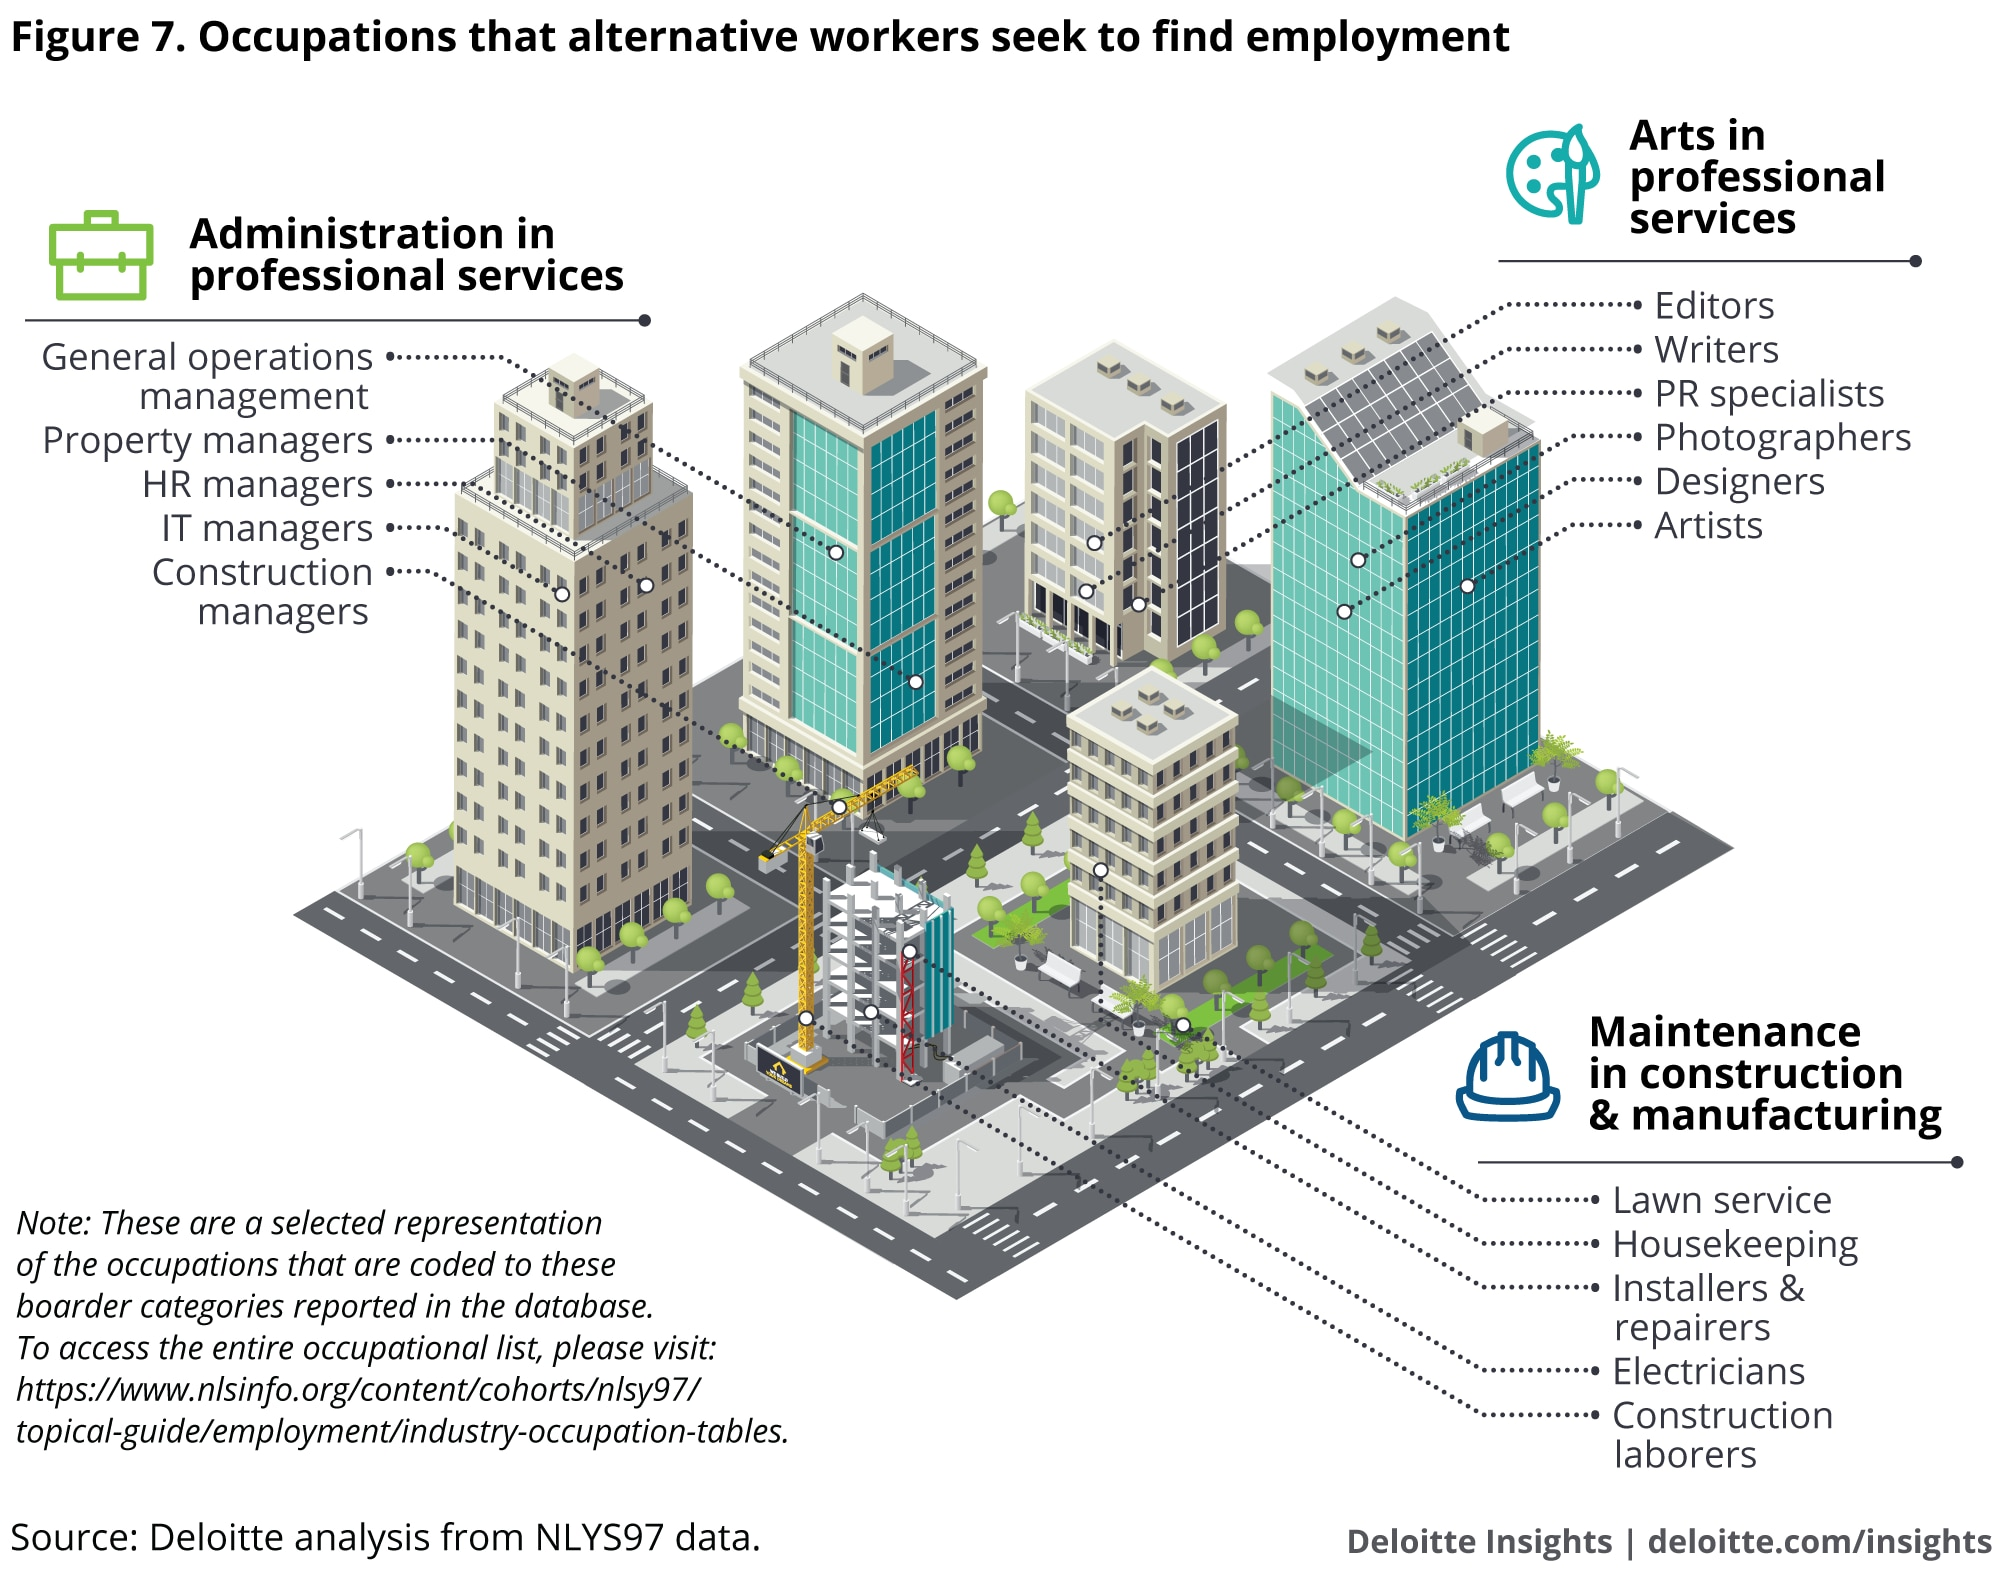 Occupations that alternative workers seek to find employment